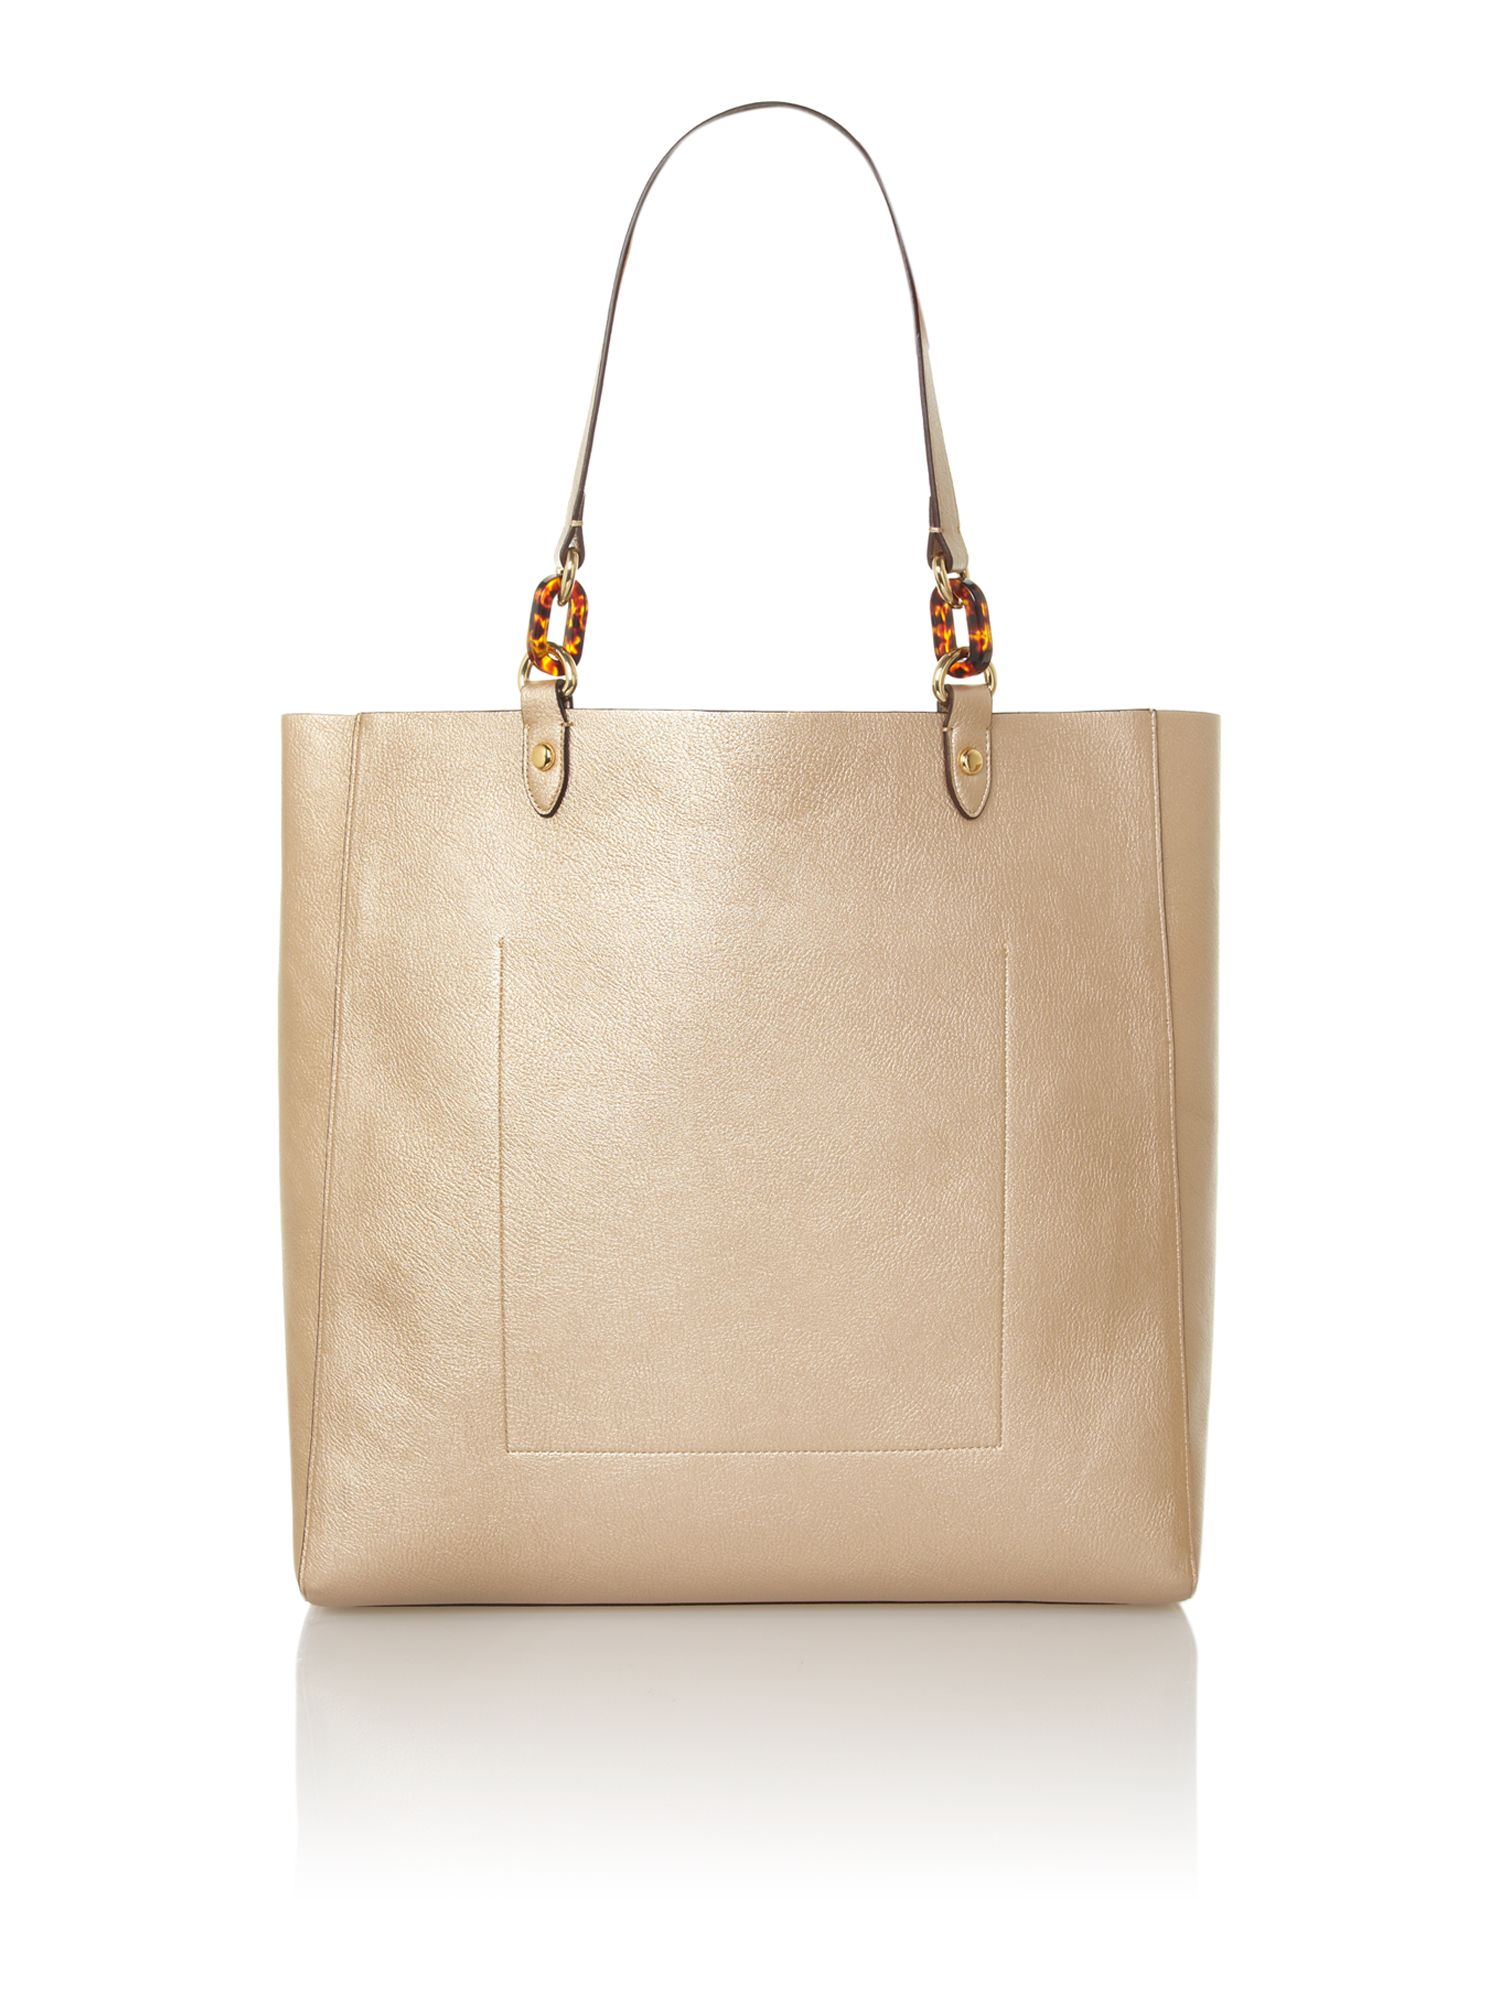 Bembridge tote bag